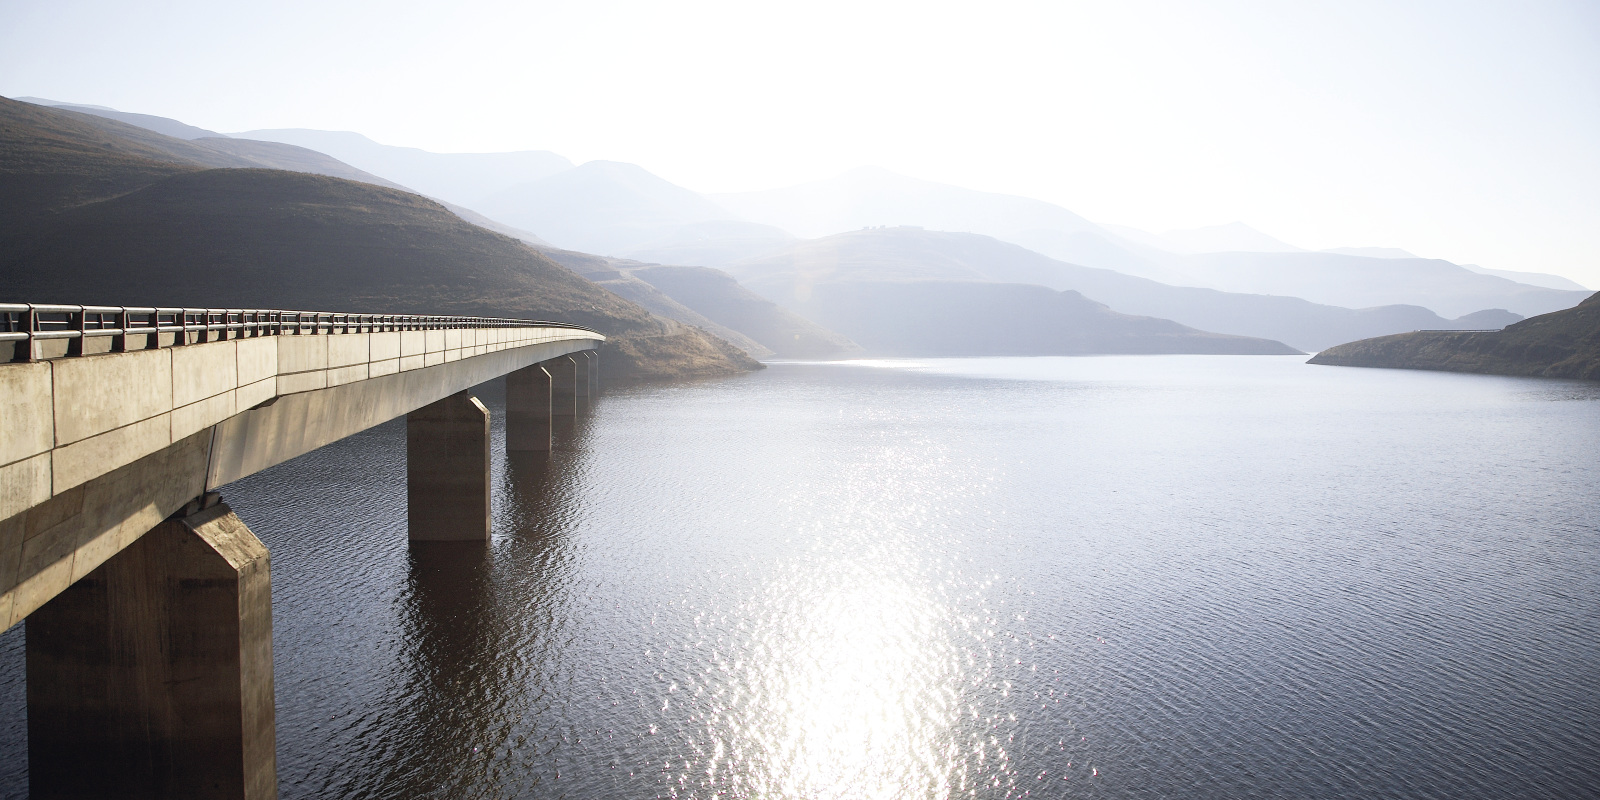 View of bridge going over Katse Dam with sun reflecting off water